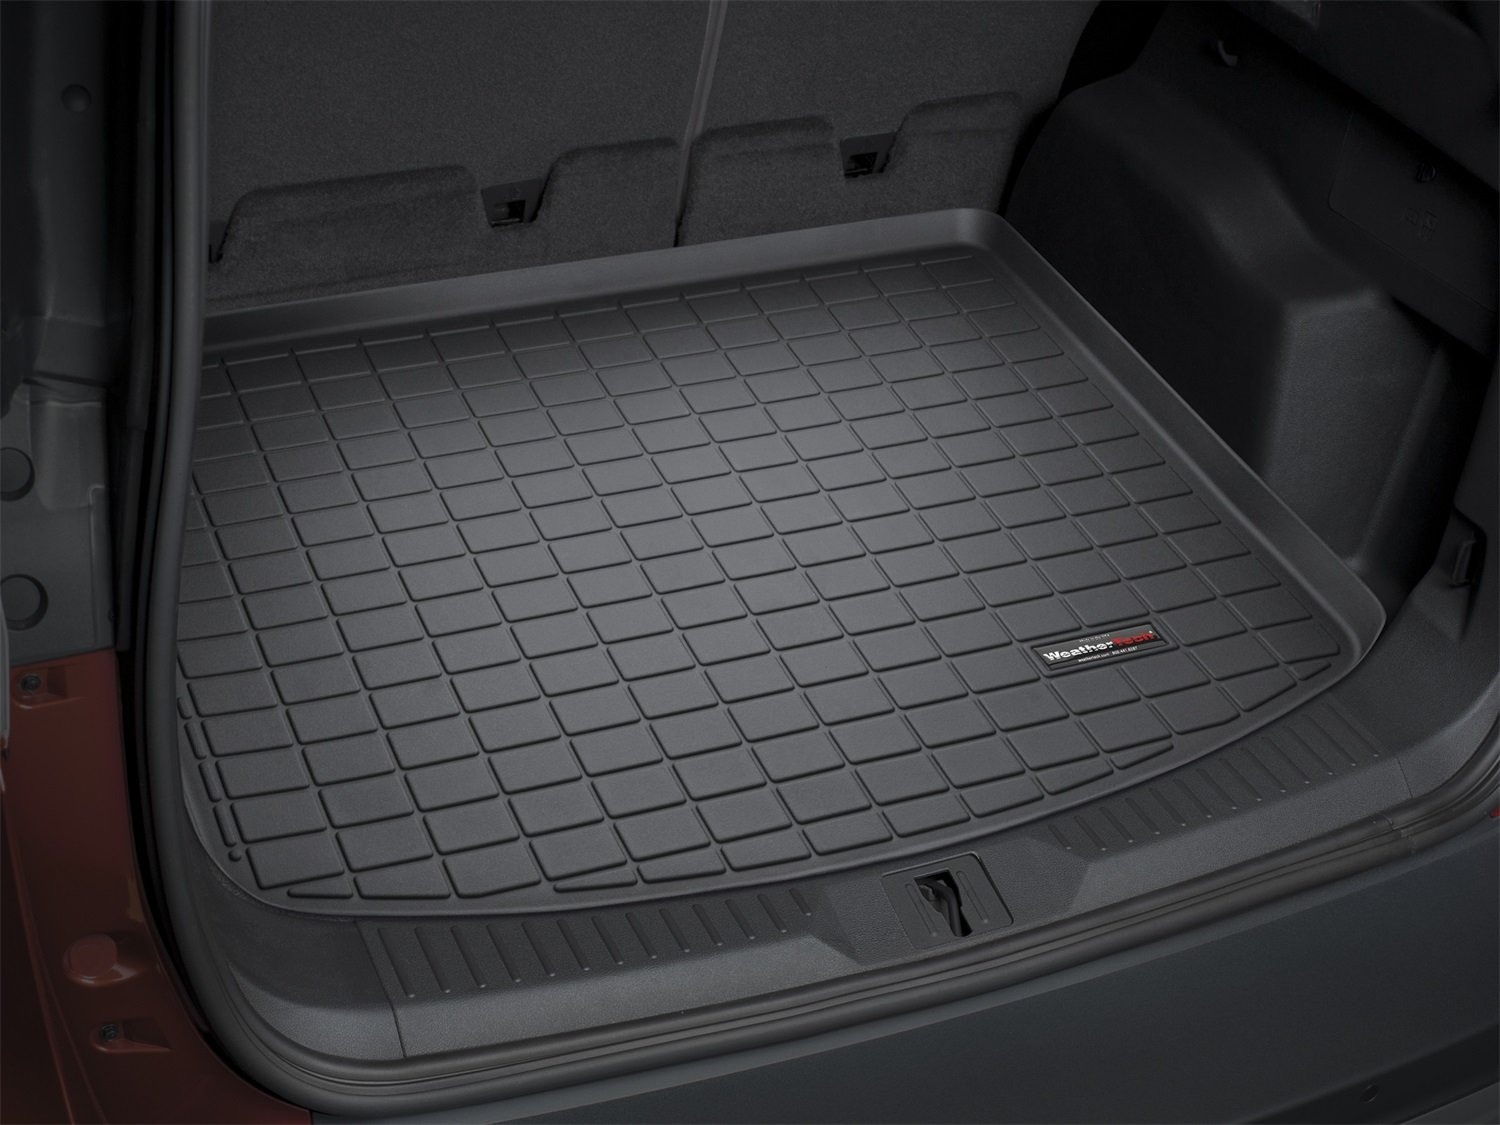 Weathertech mats walmart - Amazon Com Weathertech Custom Fit Cargo Liners For Lexus Rx Black Automotive